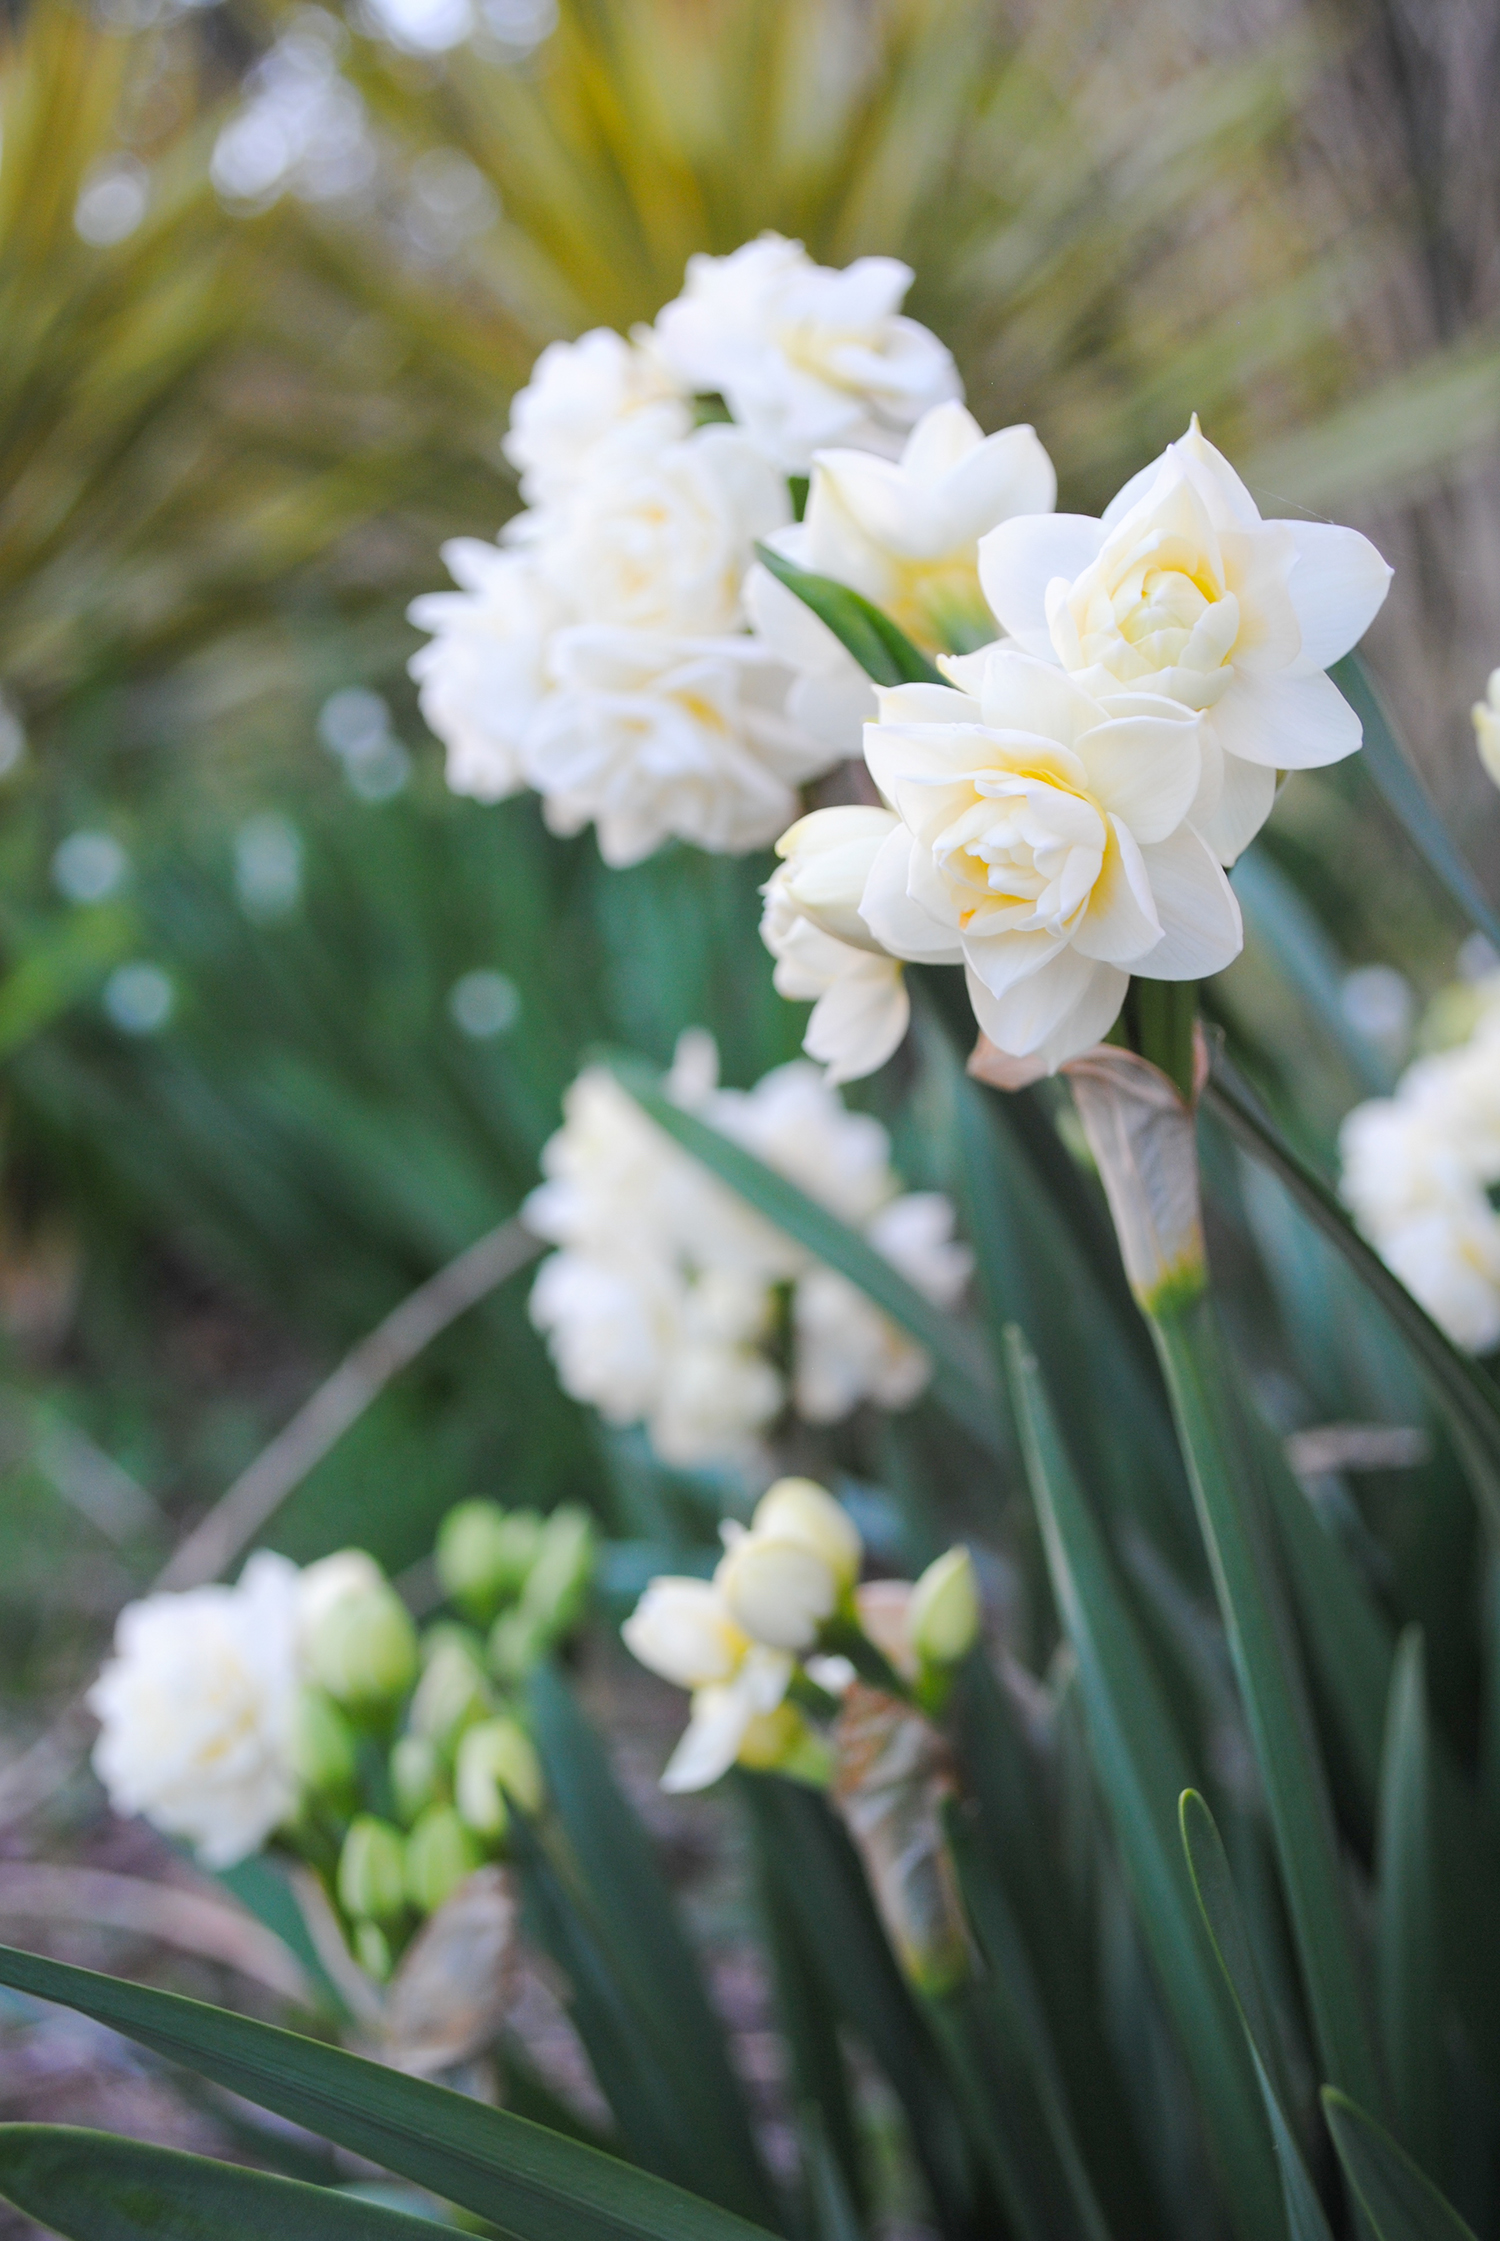 'Erlicheer' is one of the last Narcissus to flower in the deep south. Overall, double forms of Narcissus are usually later than their single counterparts.